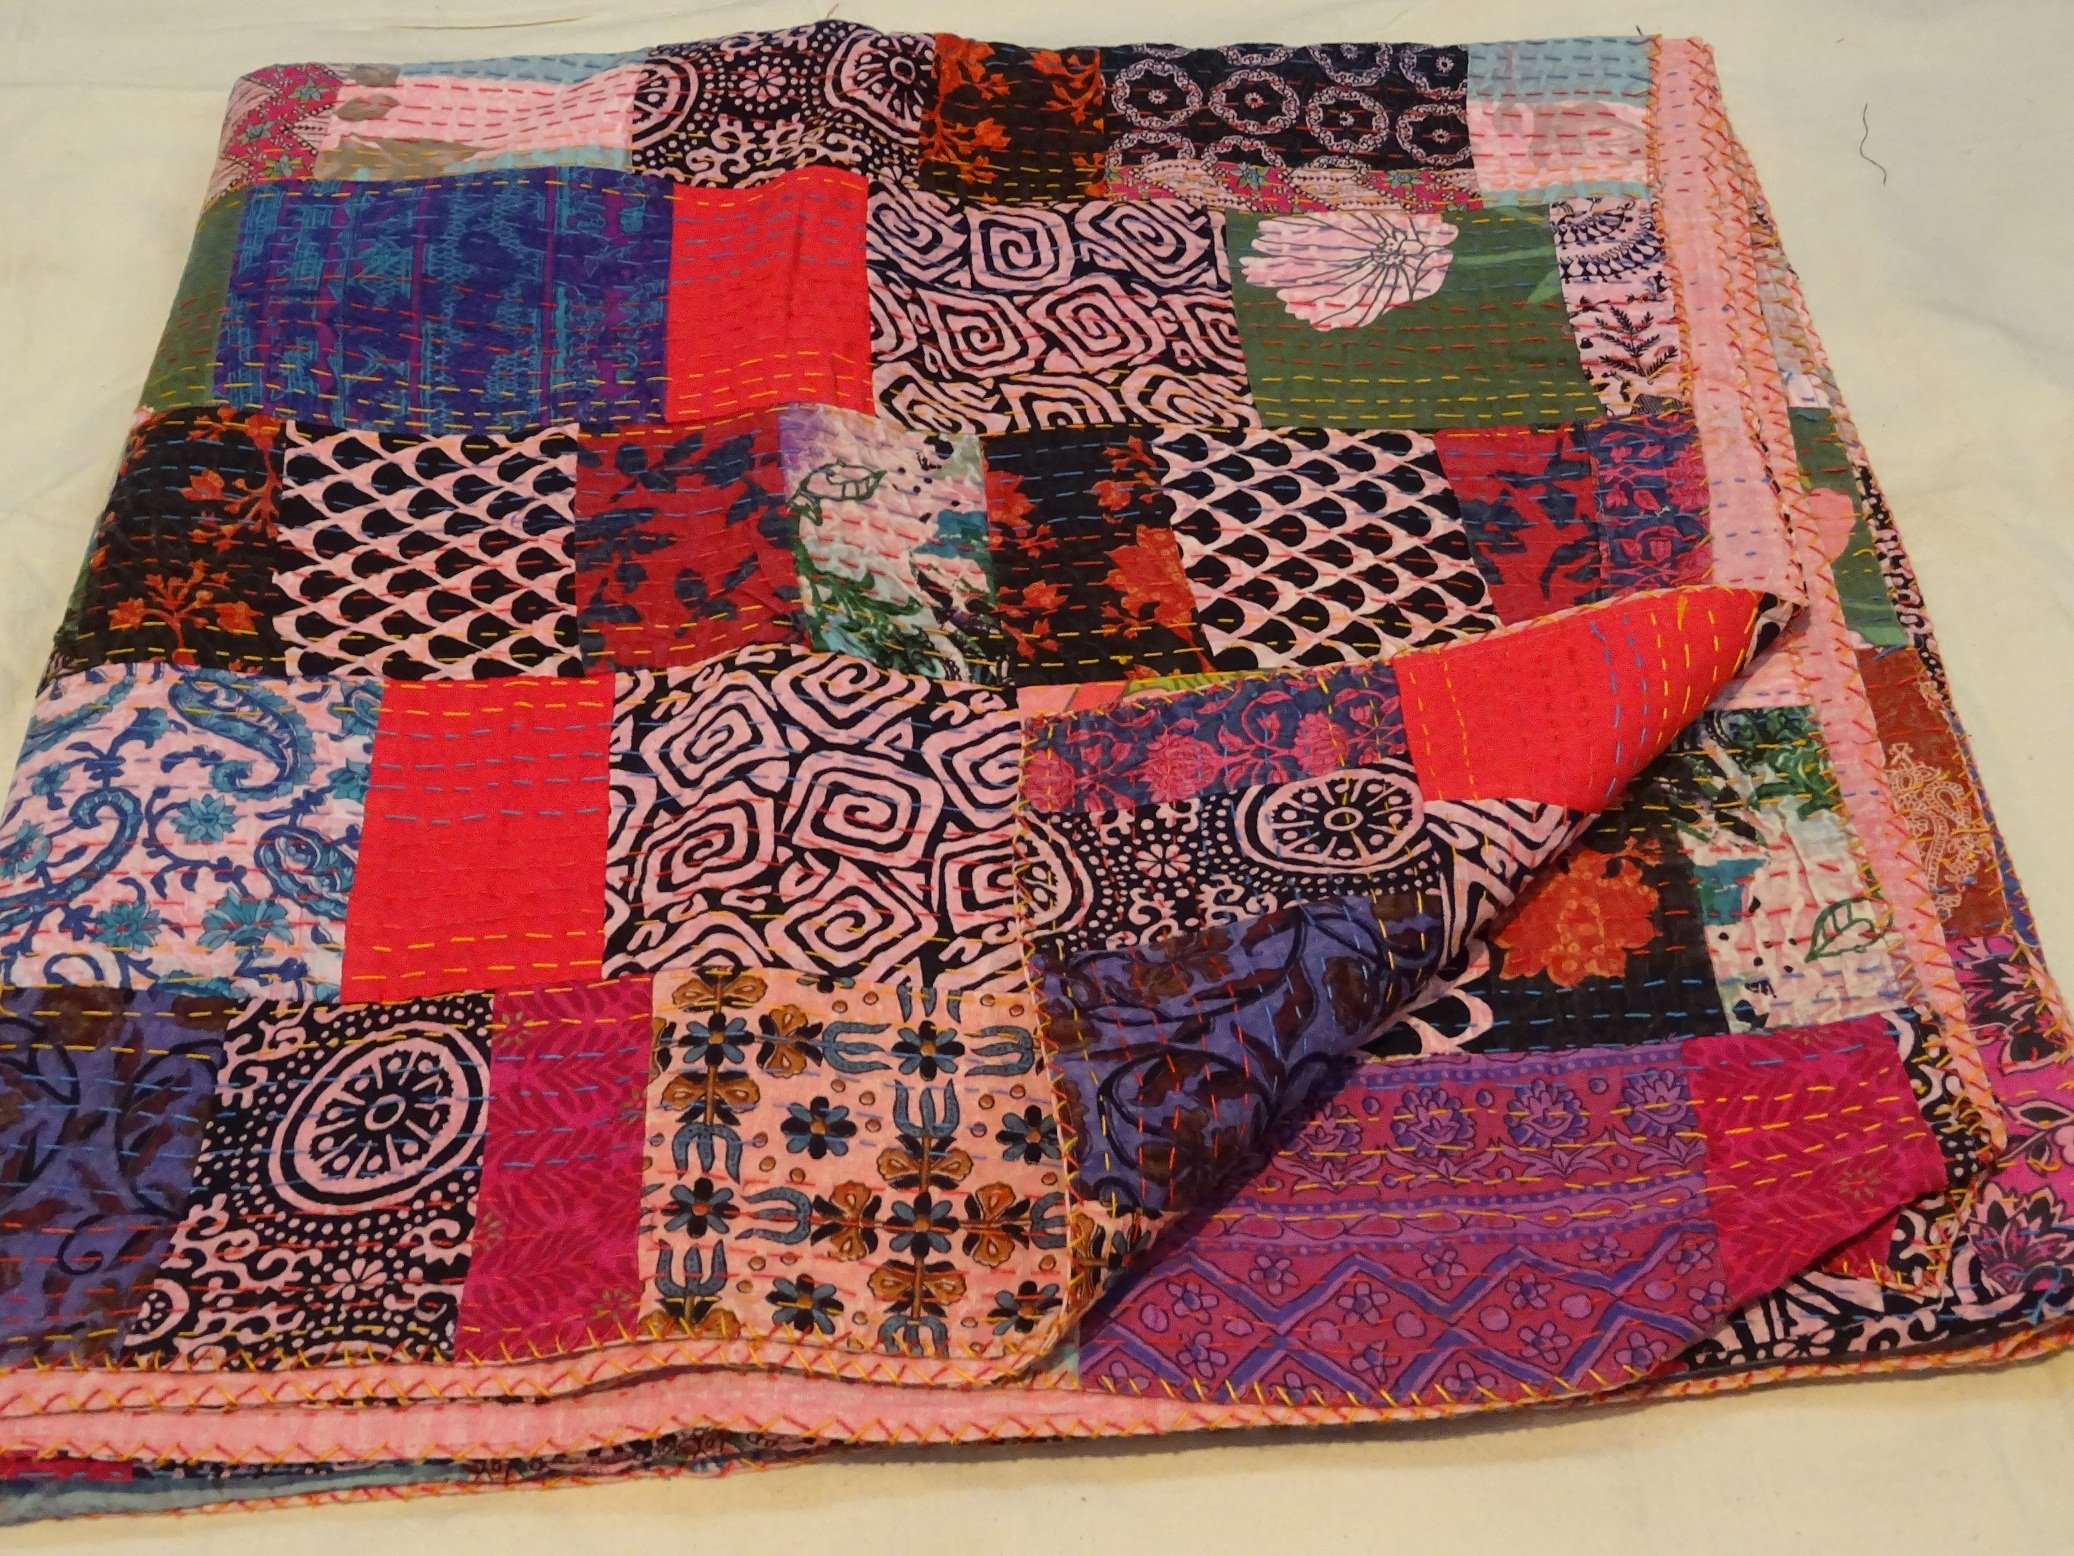 King Size Queen Size Ikat Kantha Quilt, Reversible Bedcover Bedding Indian Throw, Kantha Quilt, Bohemian Kantha Bedspread, Indian Kantha Decor